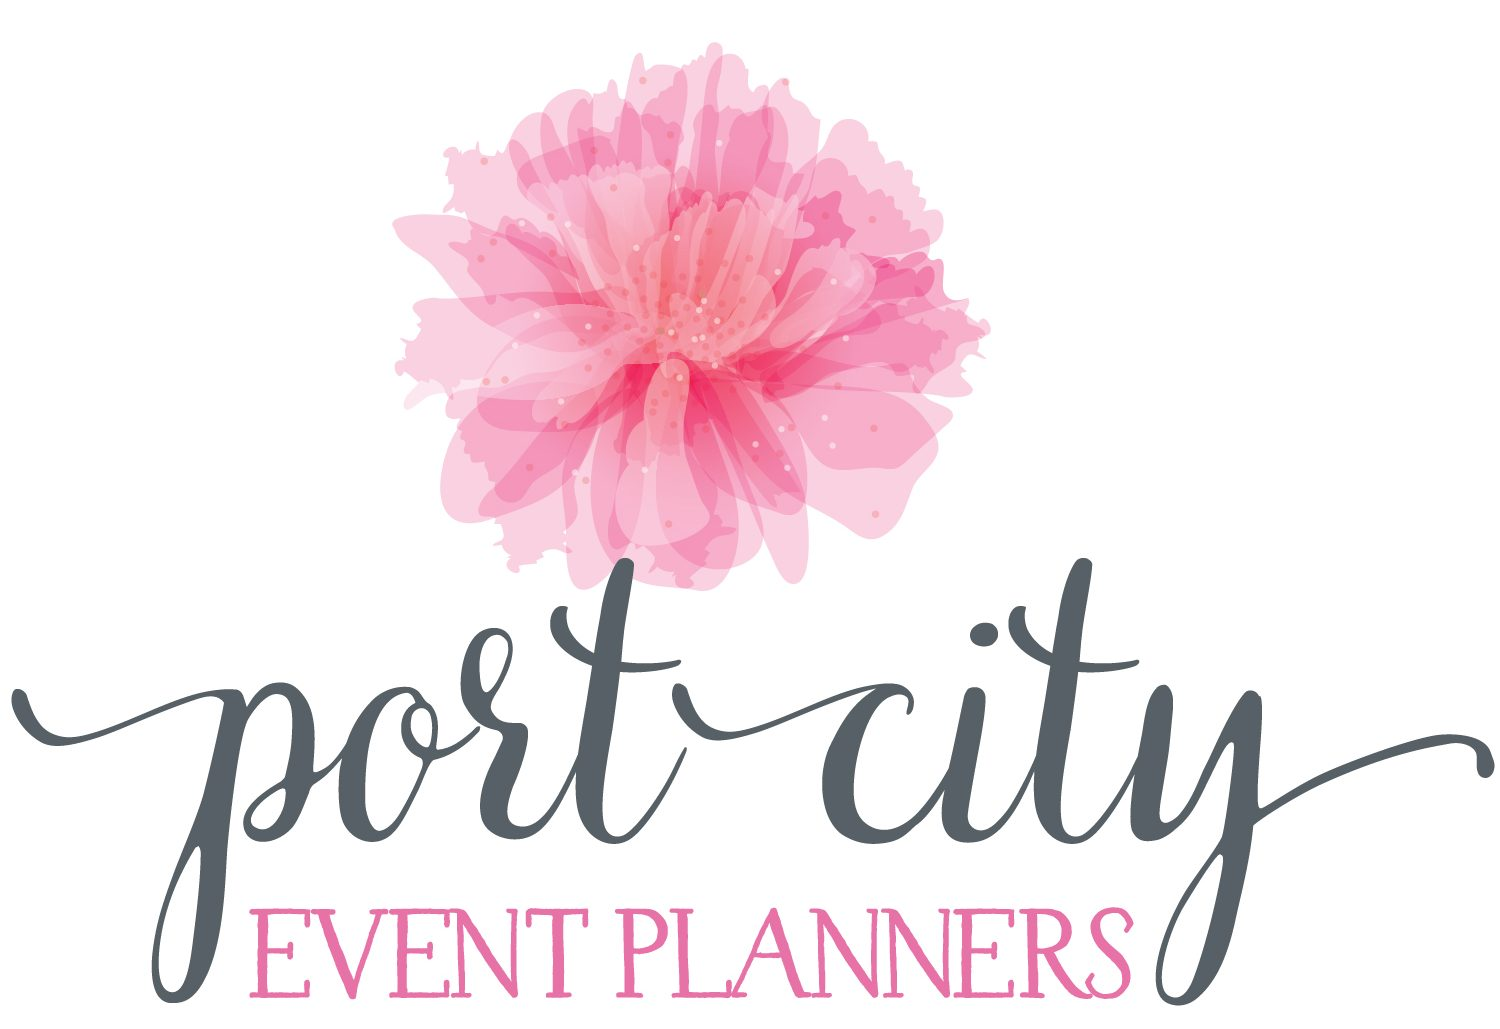 Port City Event Planners